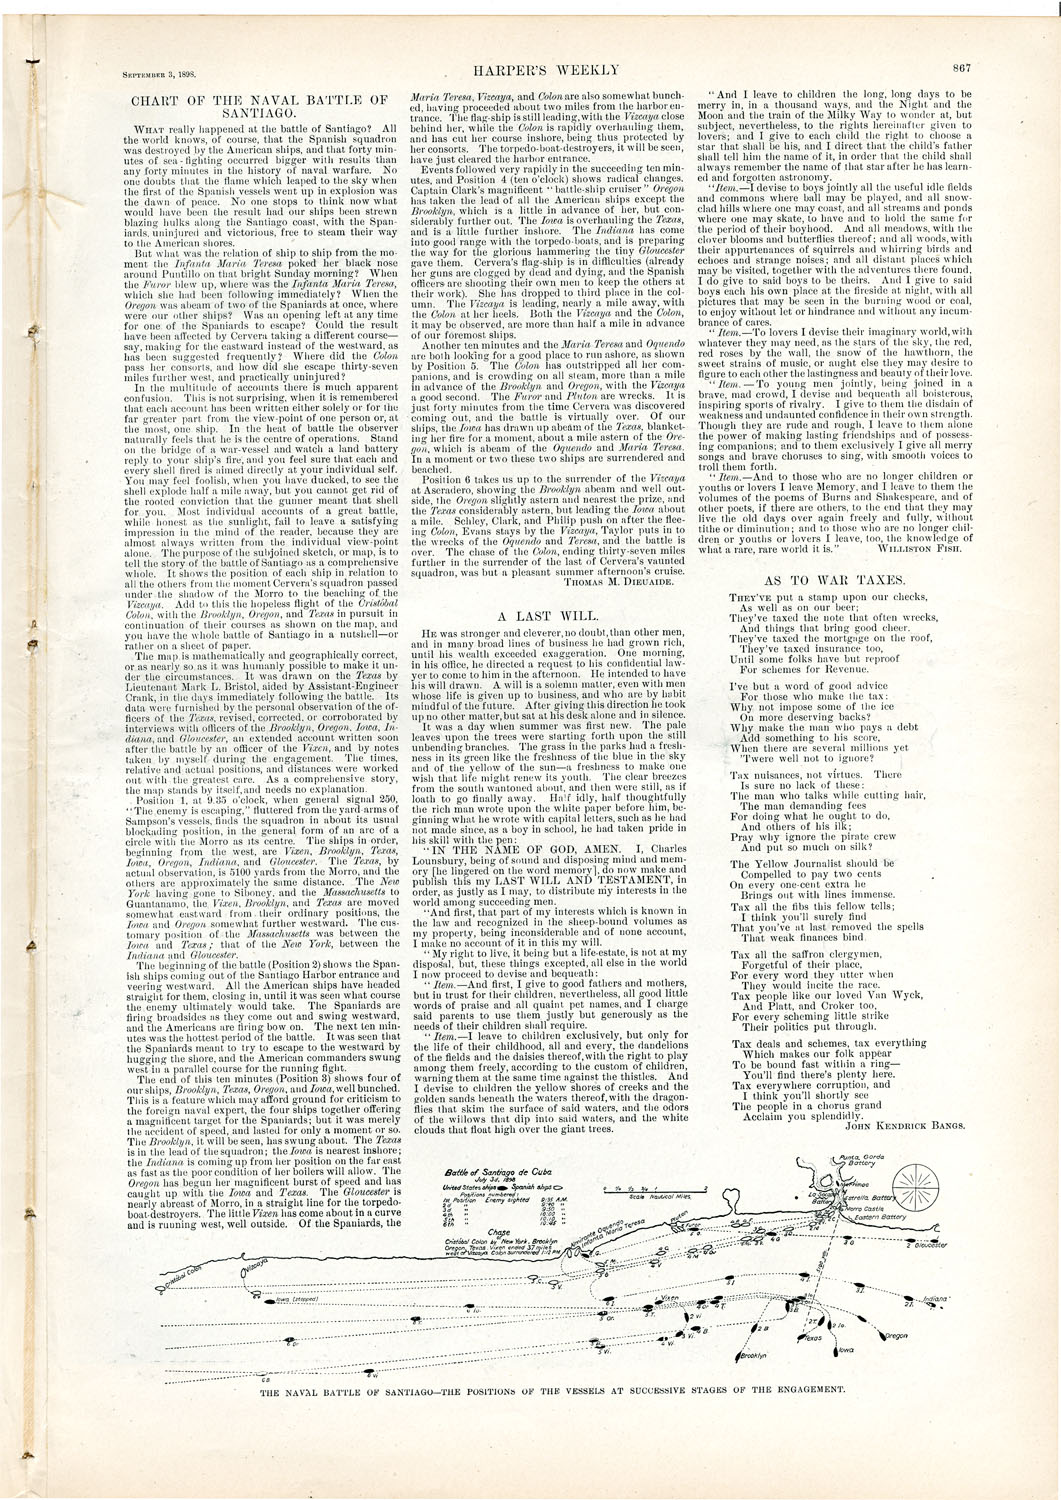 Full page including text of original printing